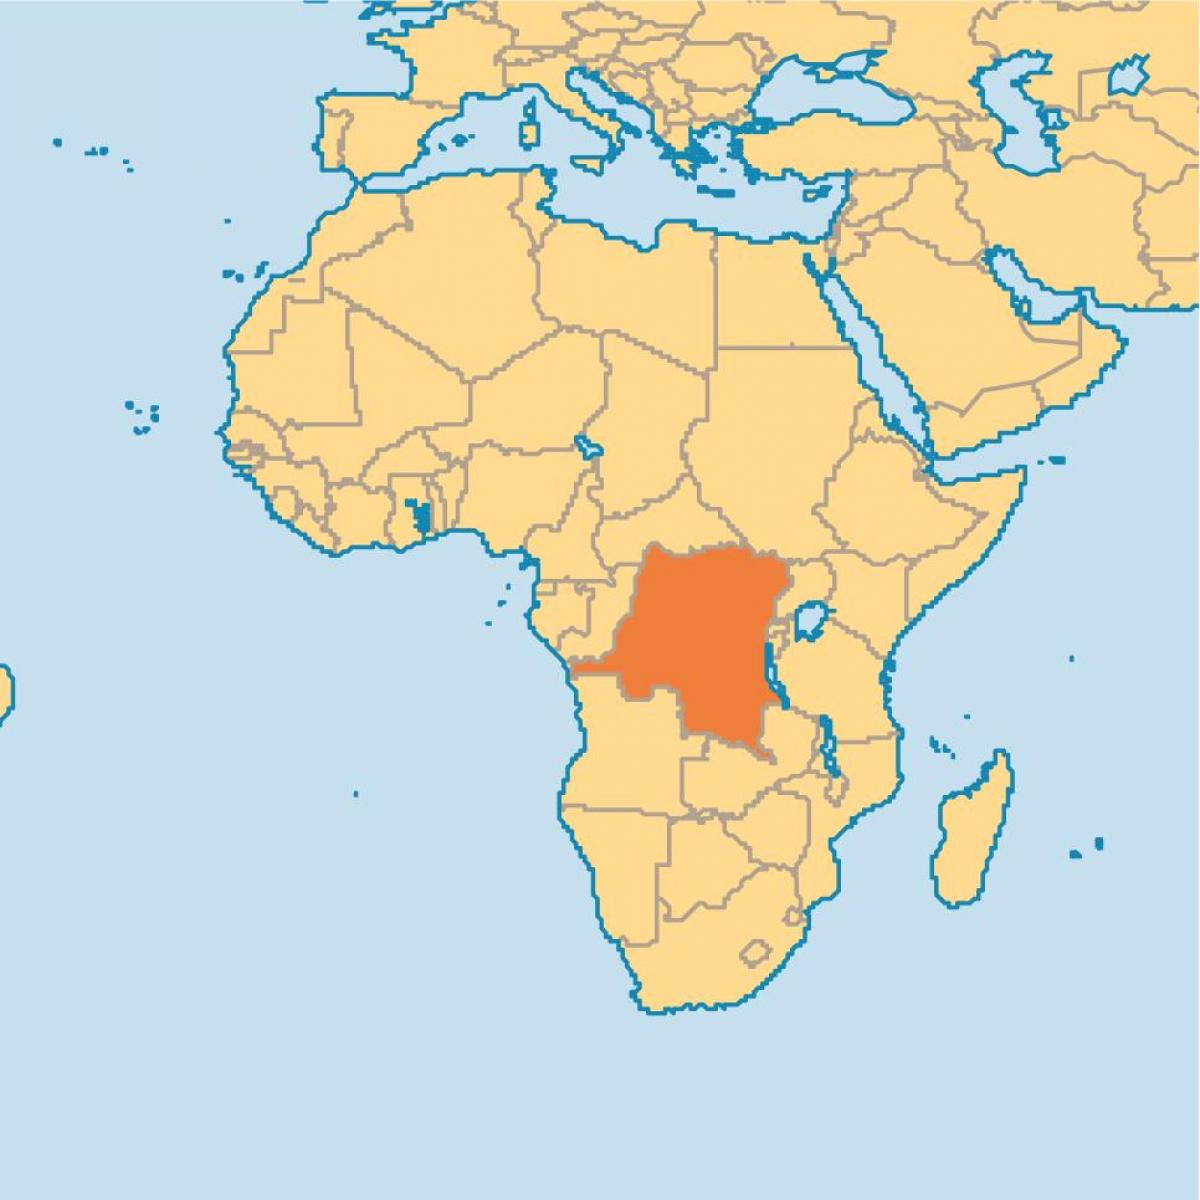 Zaire Africa Map Zaire on world map   Map of zaire on world (Middle Africa   Africa)